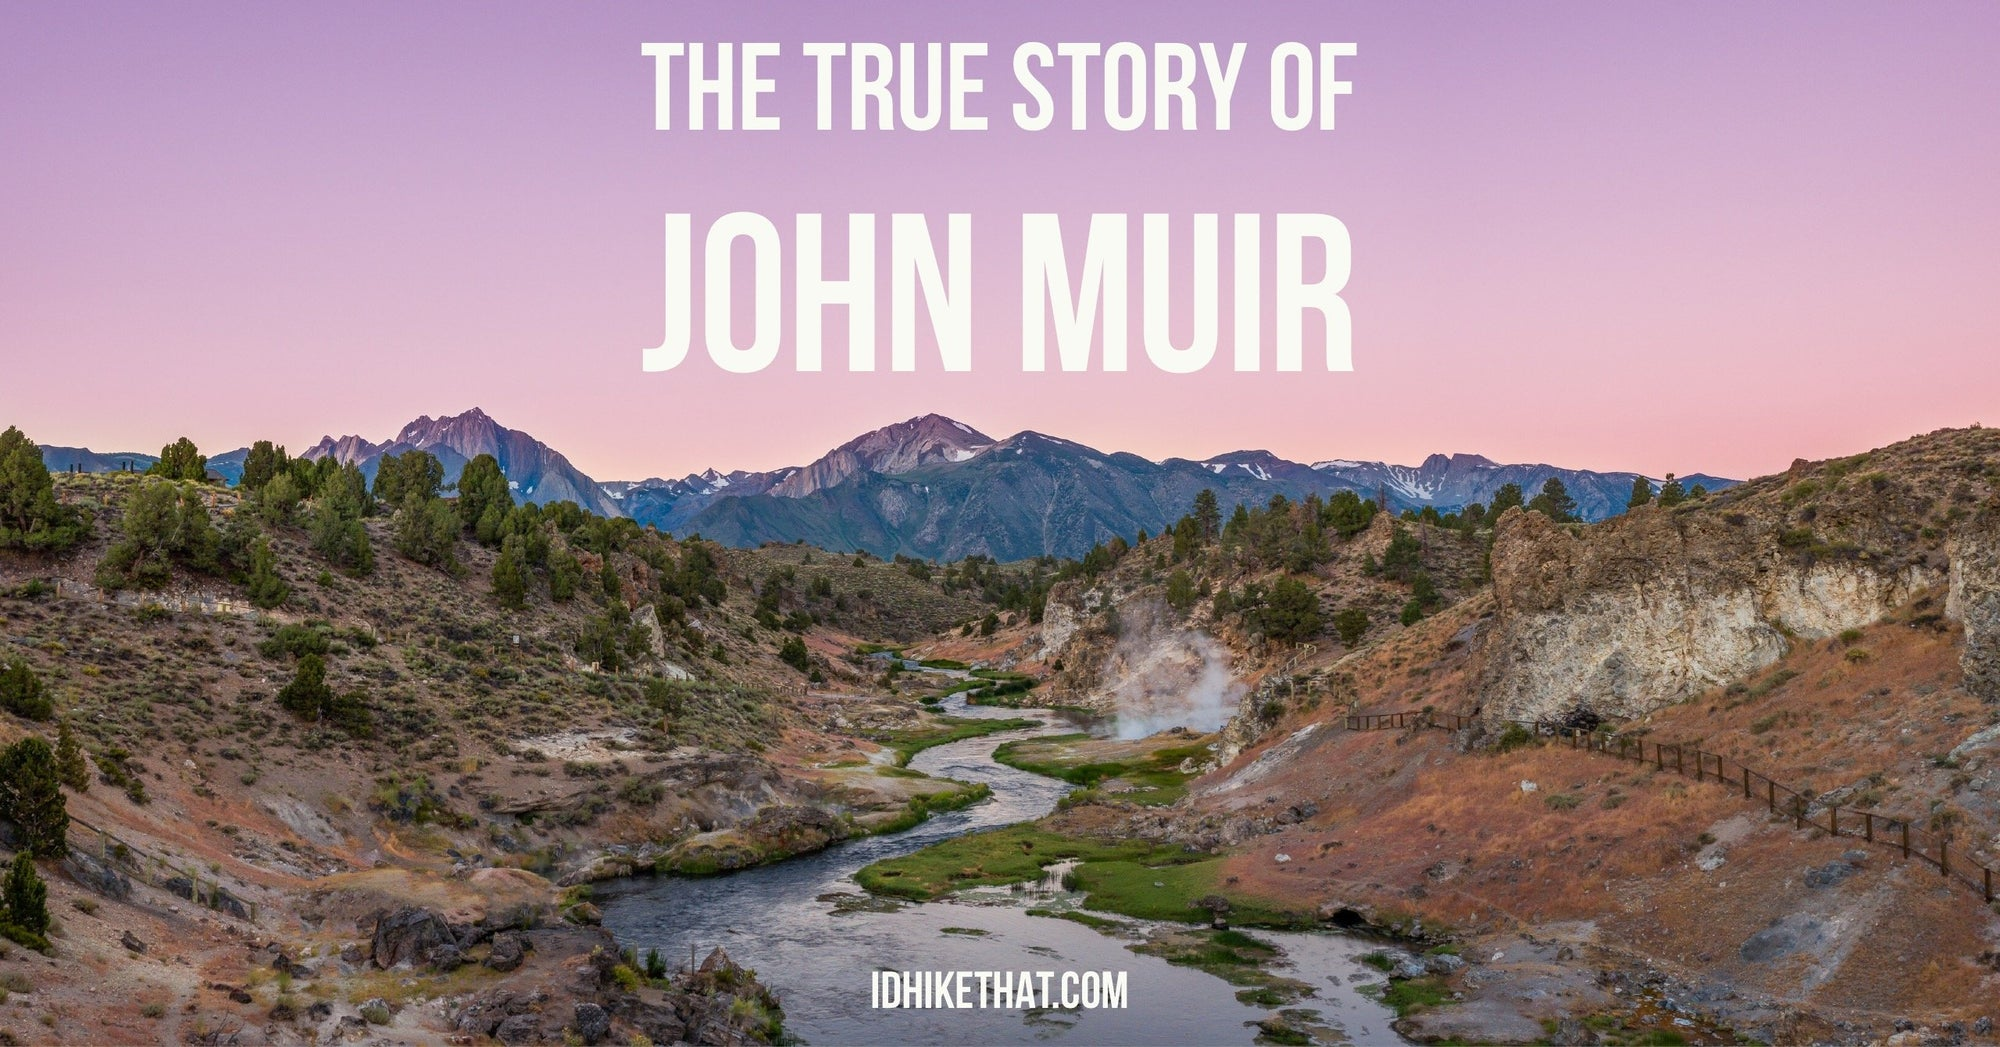 The true story of John Muir. Learn the inspiring true story behind the man.